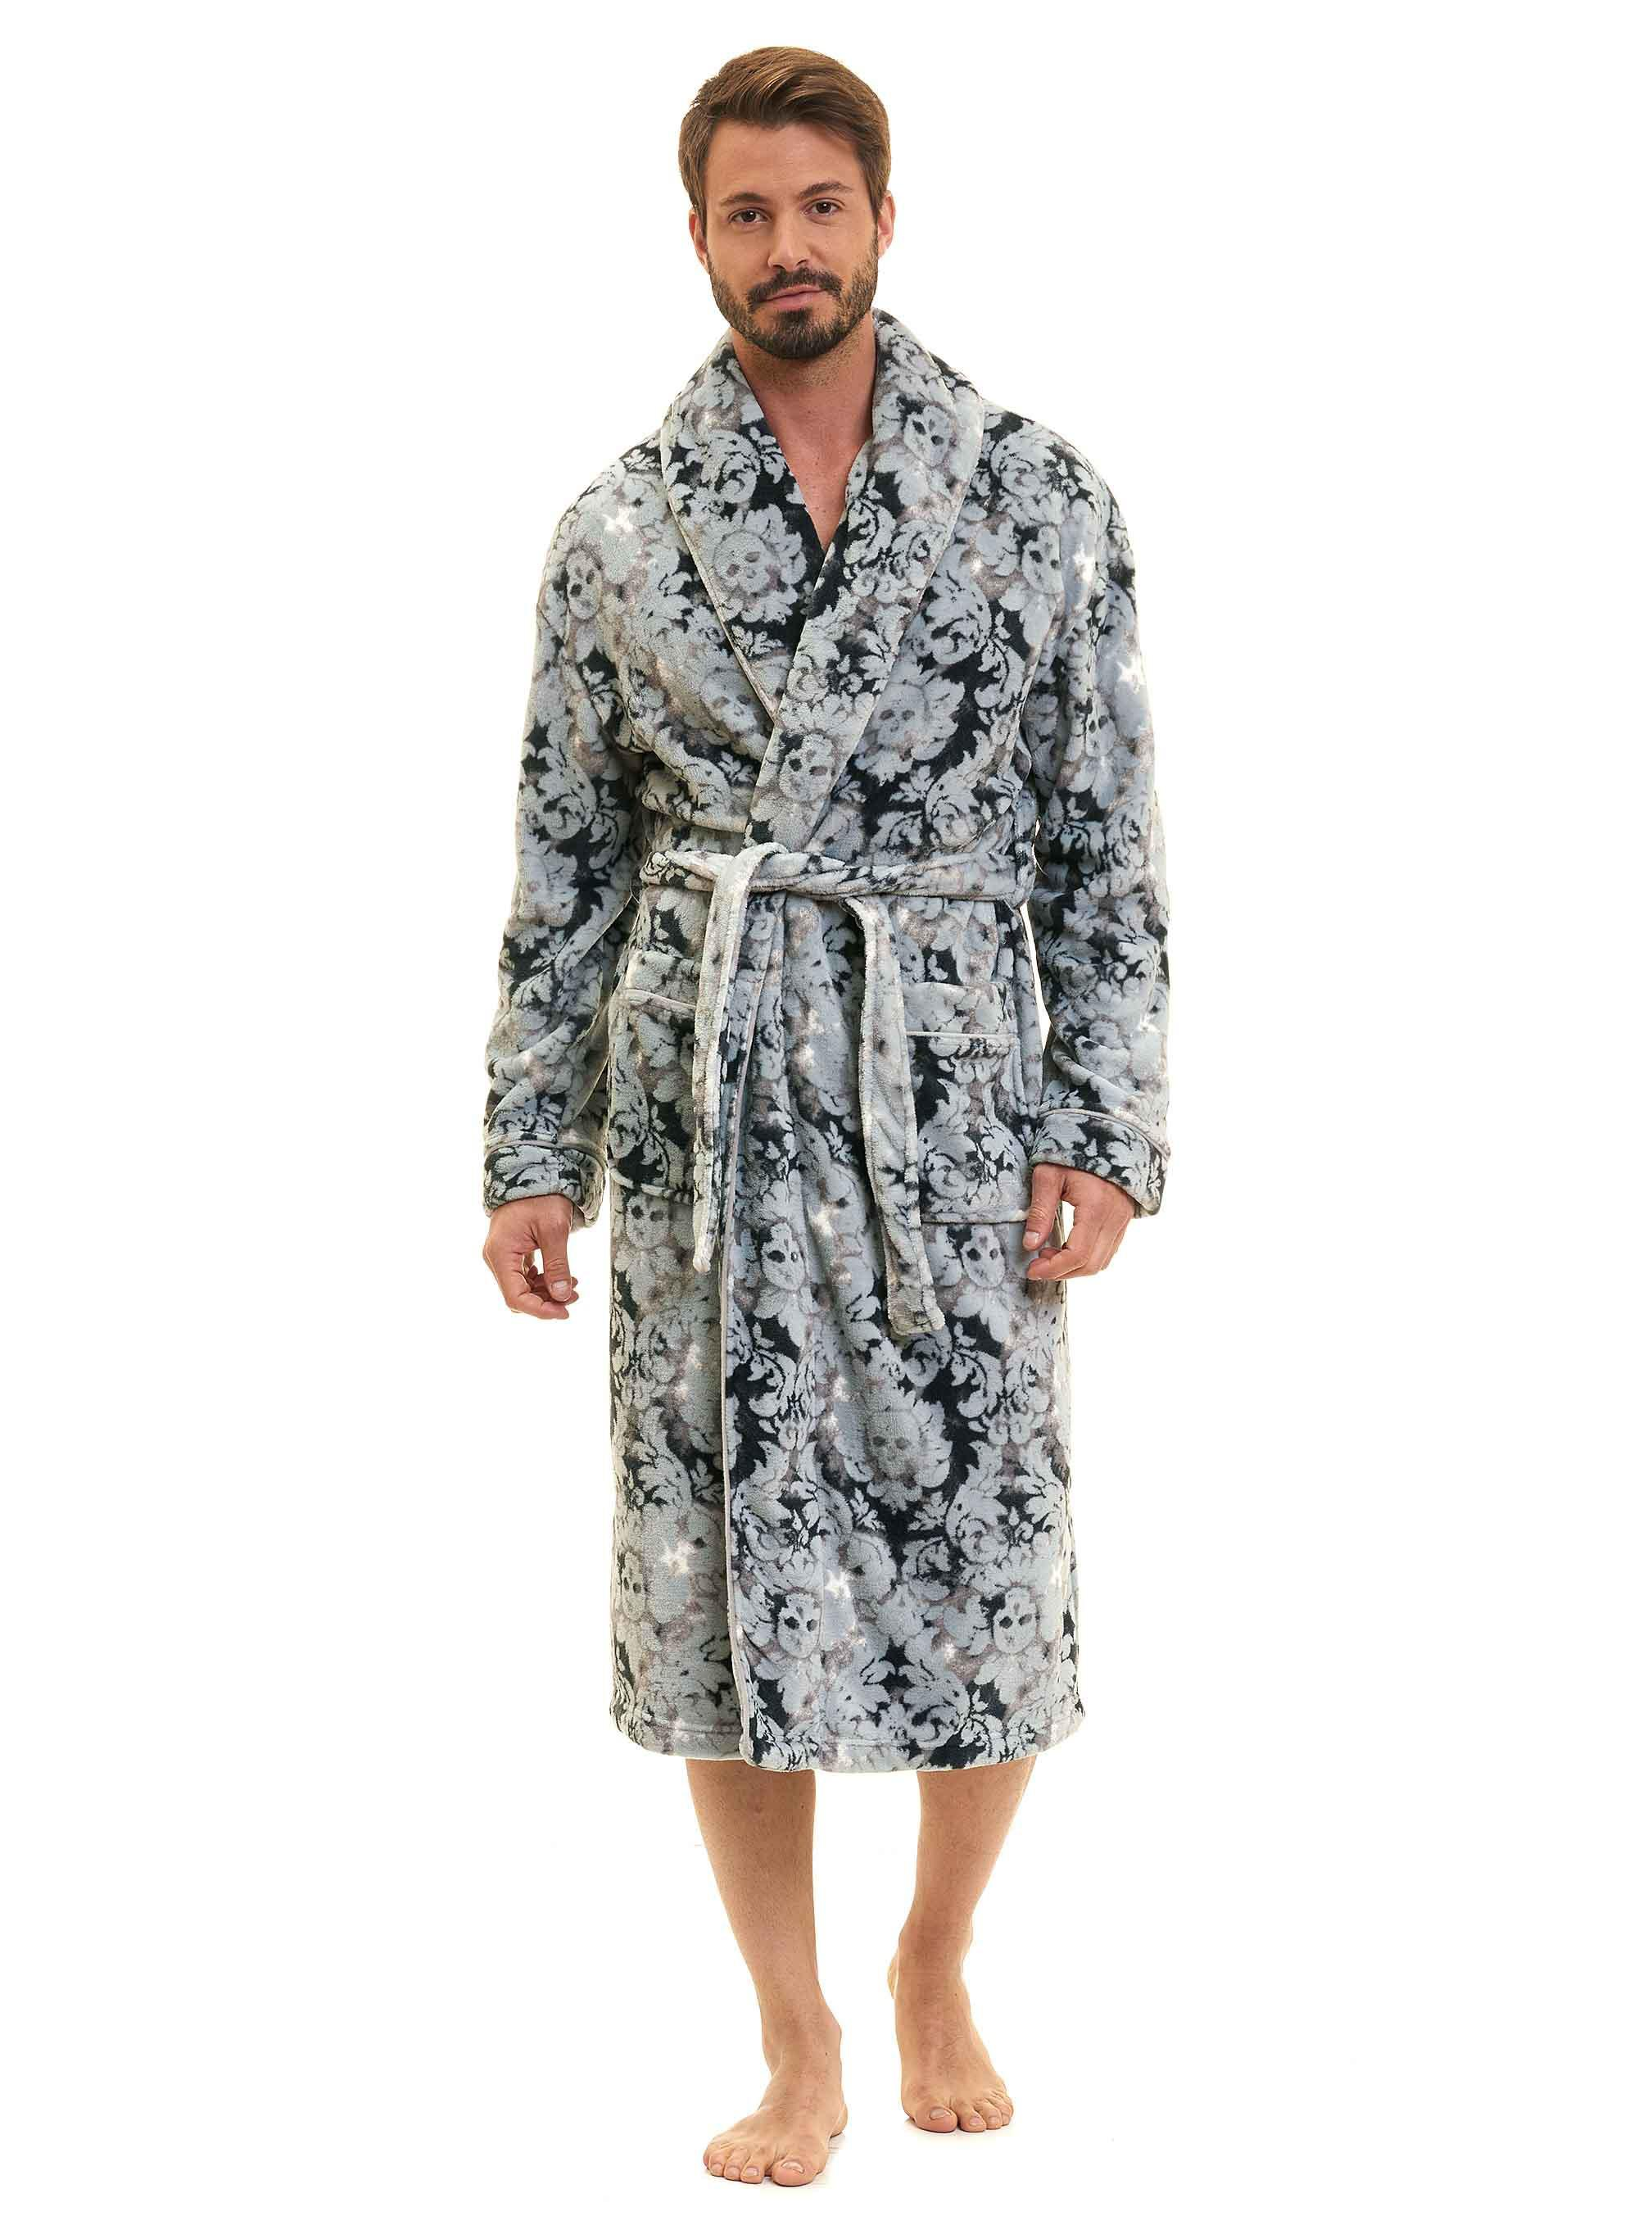 80dcc4e272 Lyst - Robert Graham Skulls Plush Shawl Robe in Gray for Men